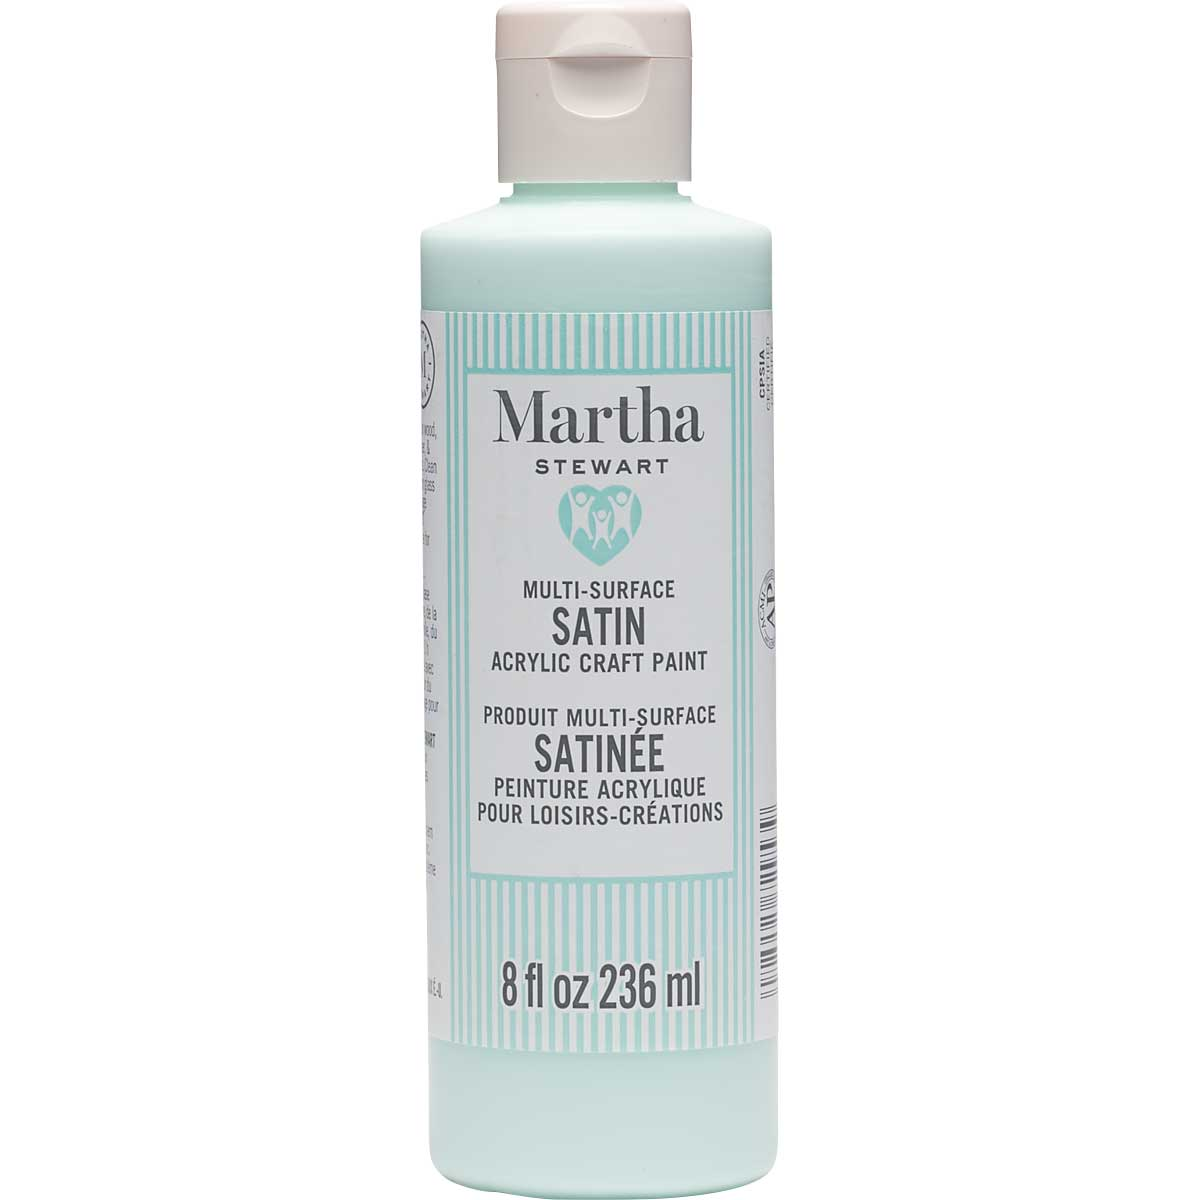 Martha Stewart® 8oz Multi-Surface Satin Acrylic Craft Paint - Kiddie Pool